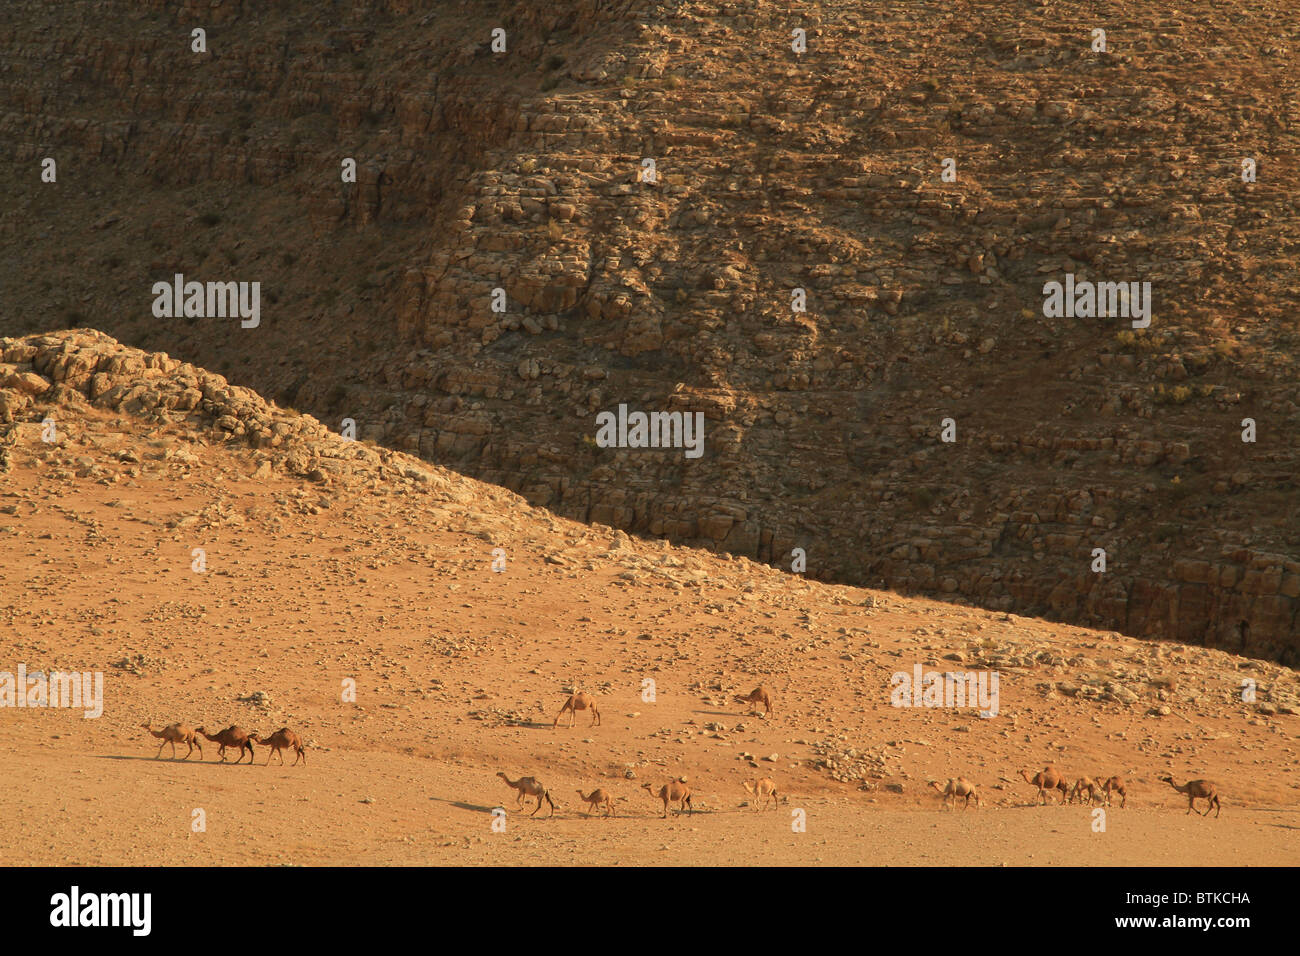 Samaria, camels at the foothill of the Horn of Sartaba - Stock Image